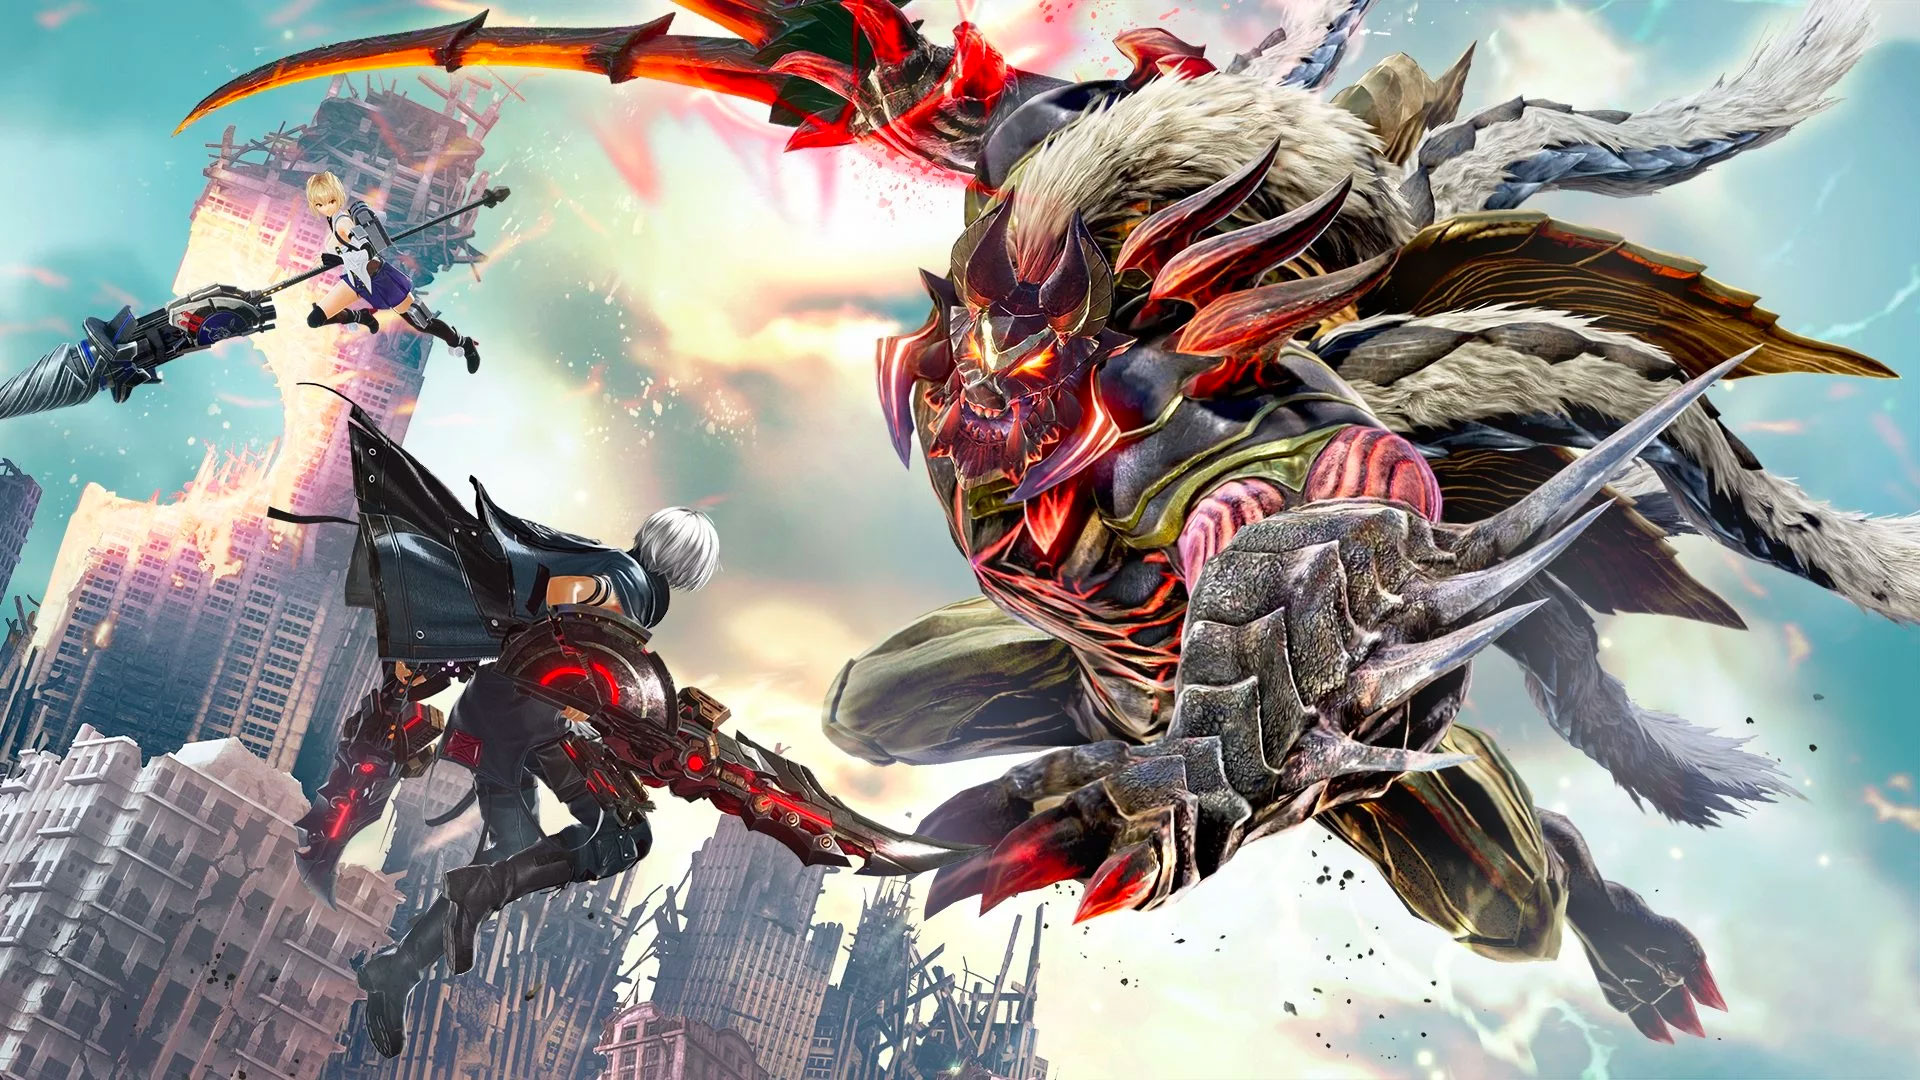 God Eater 3 Wallpapers In Ultra Hd  4K - Gameranx-9850